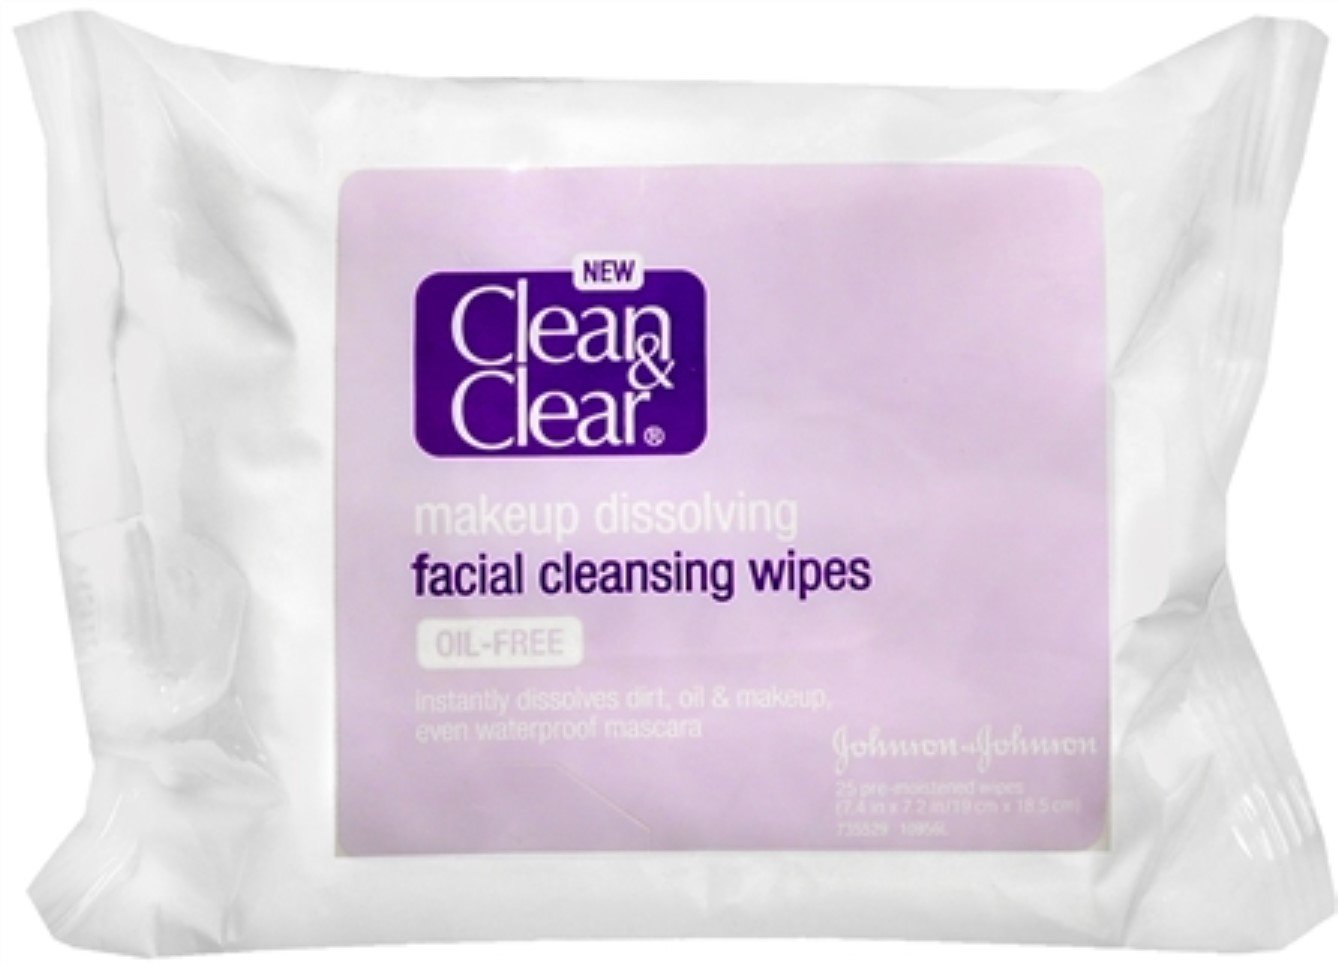 CLEAN & CLEAR Makeup Dissolving Facial Cleansing Wipes 25 Each (Pack of 6)